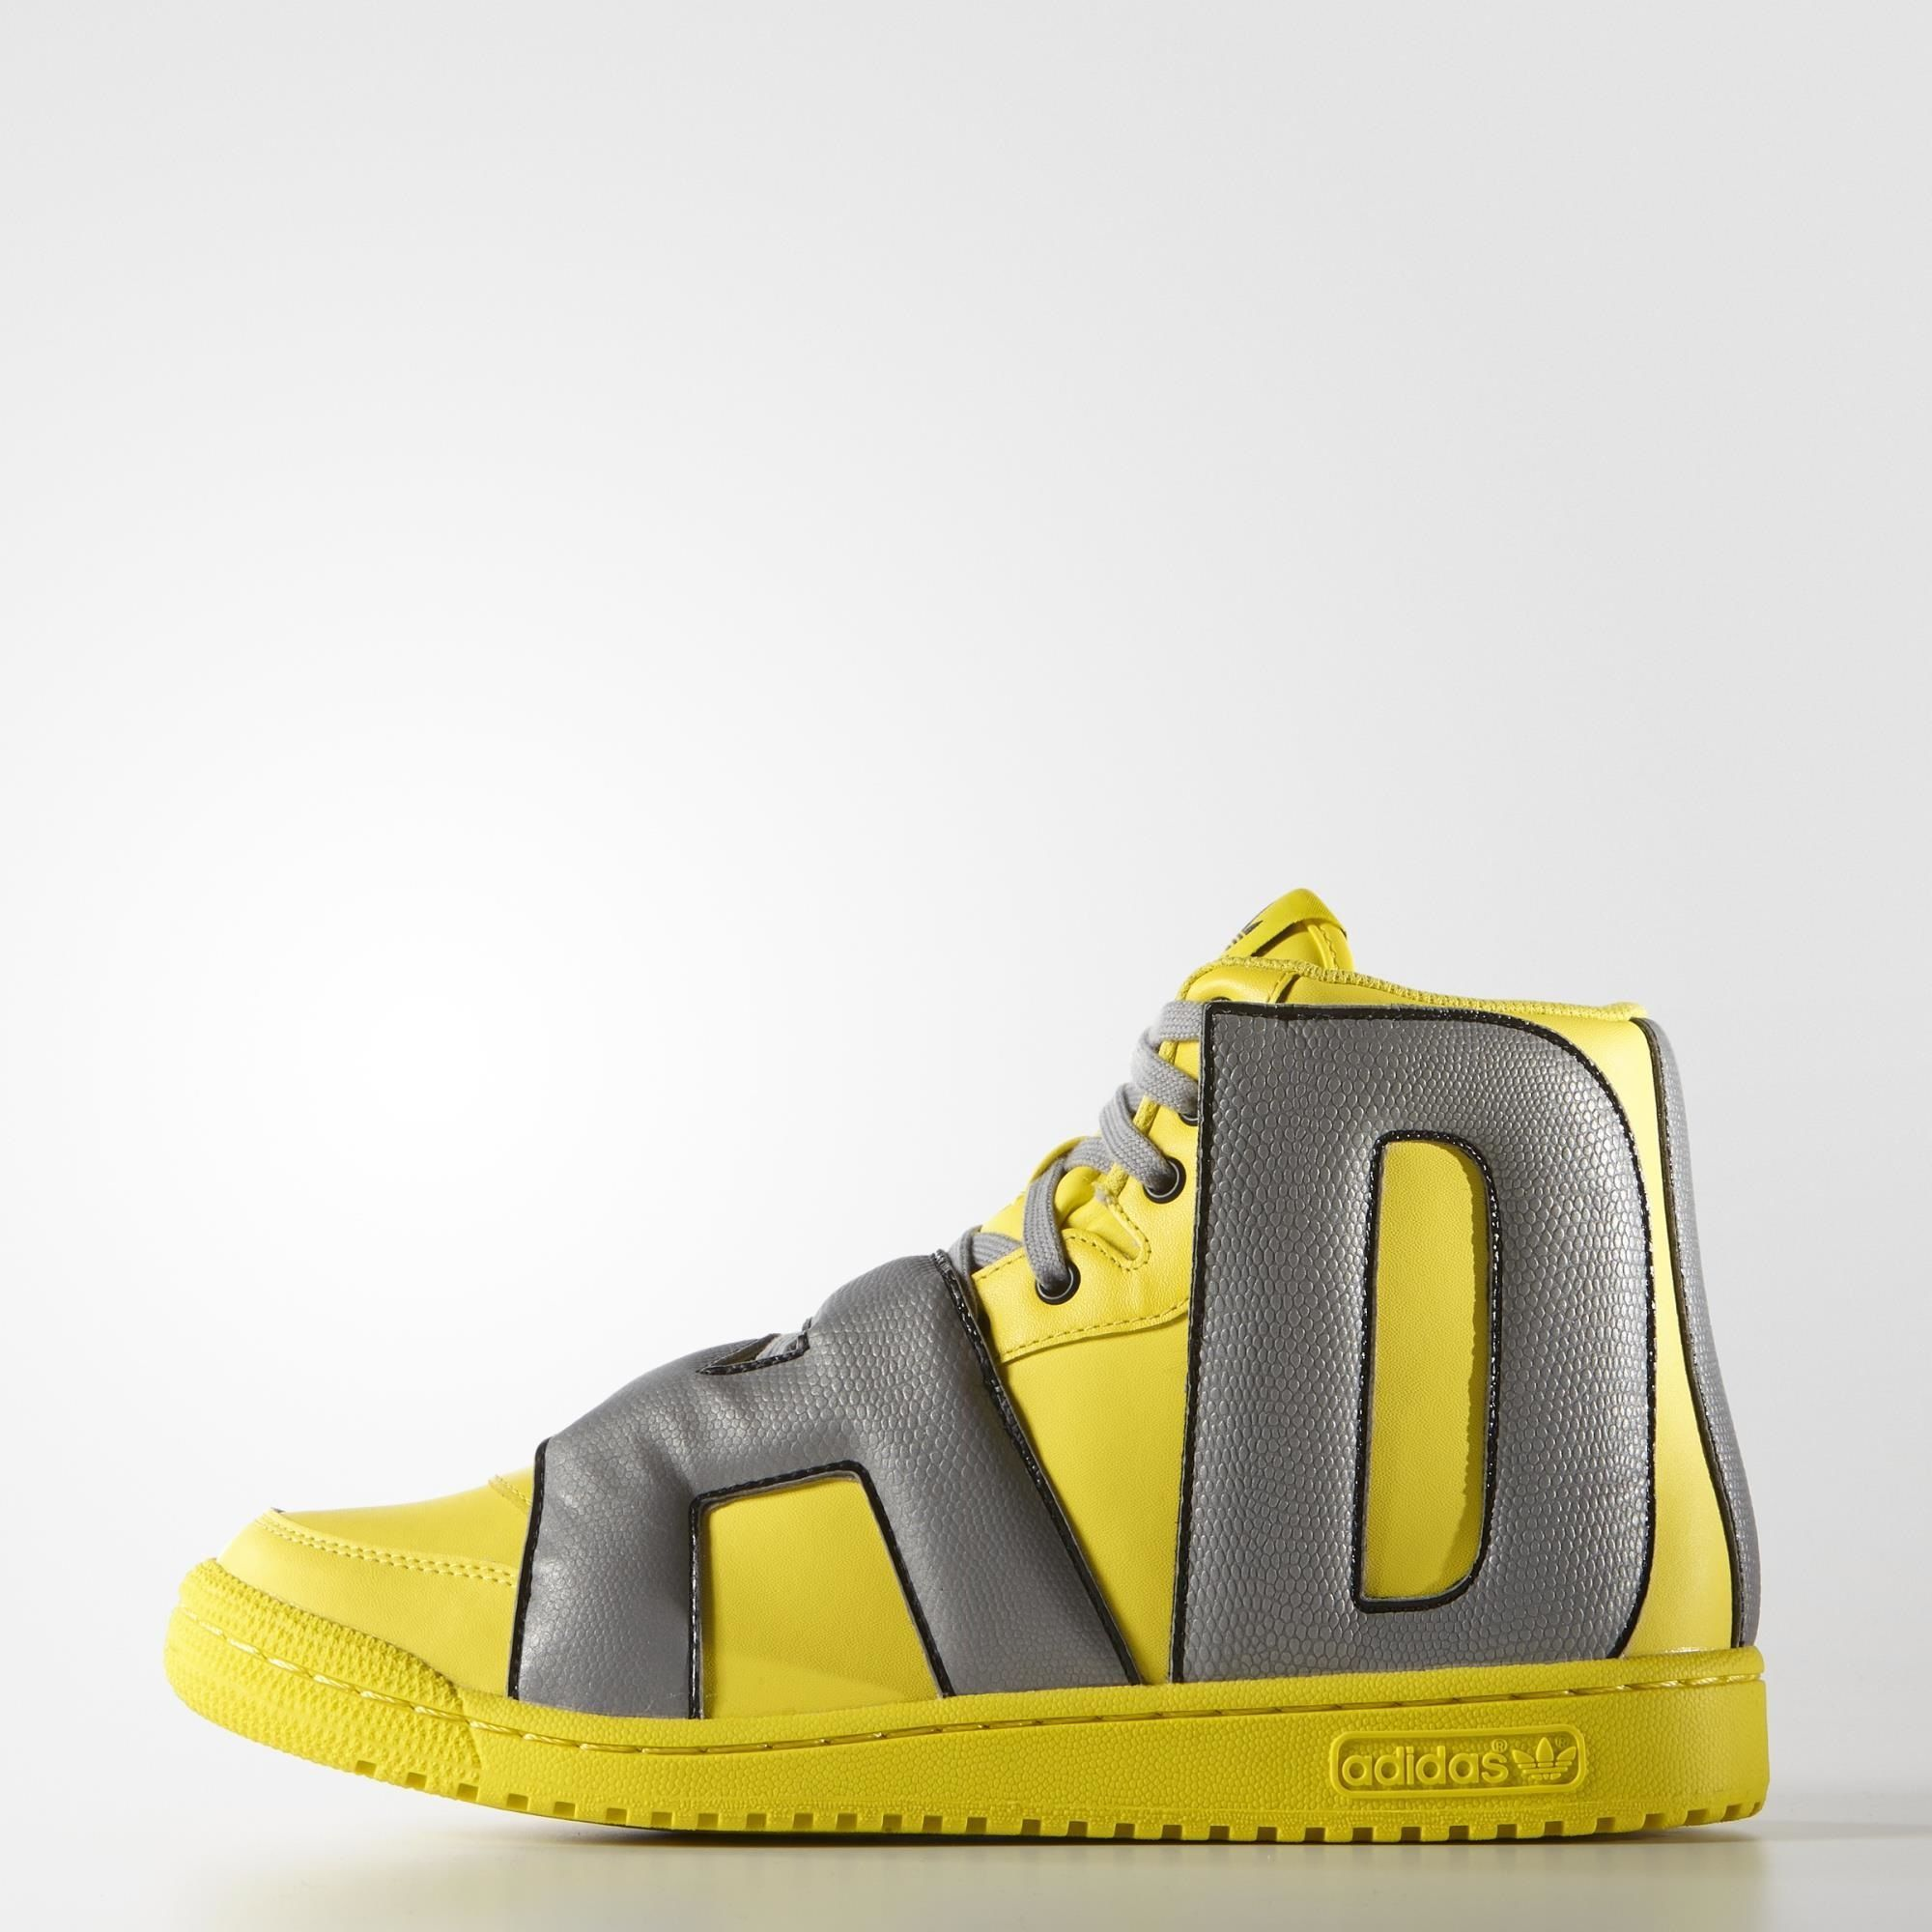 Adidas Buty Letters Reflective Zolty Adidas Poland Reflective Shoes Yellow Adidas Shoes